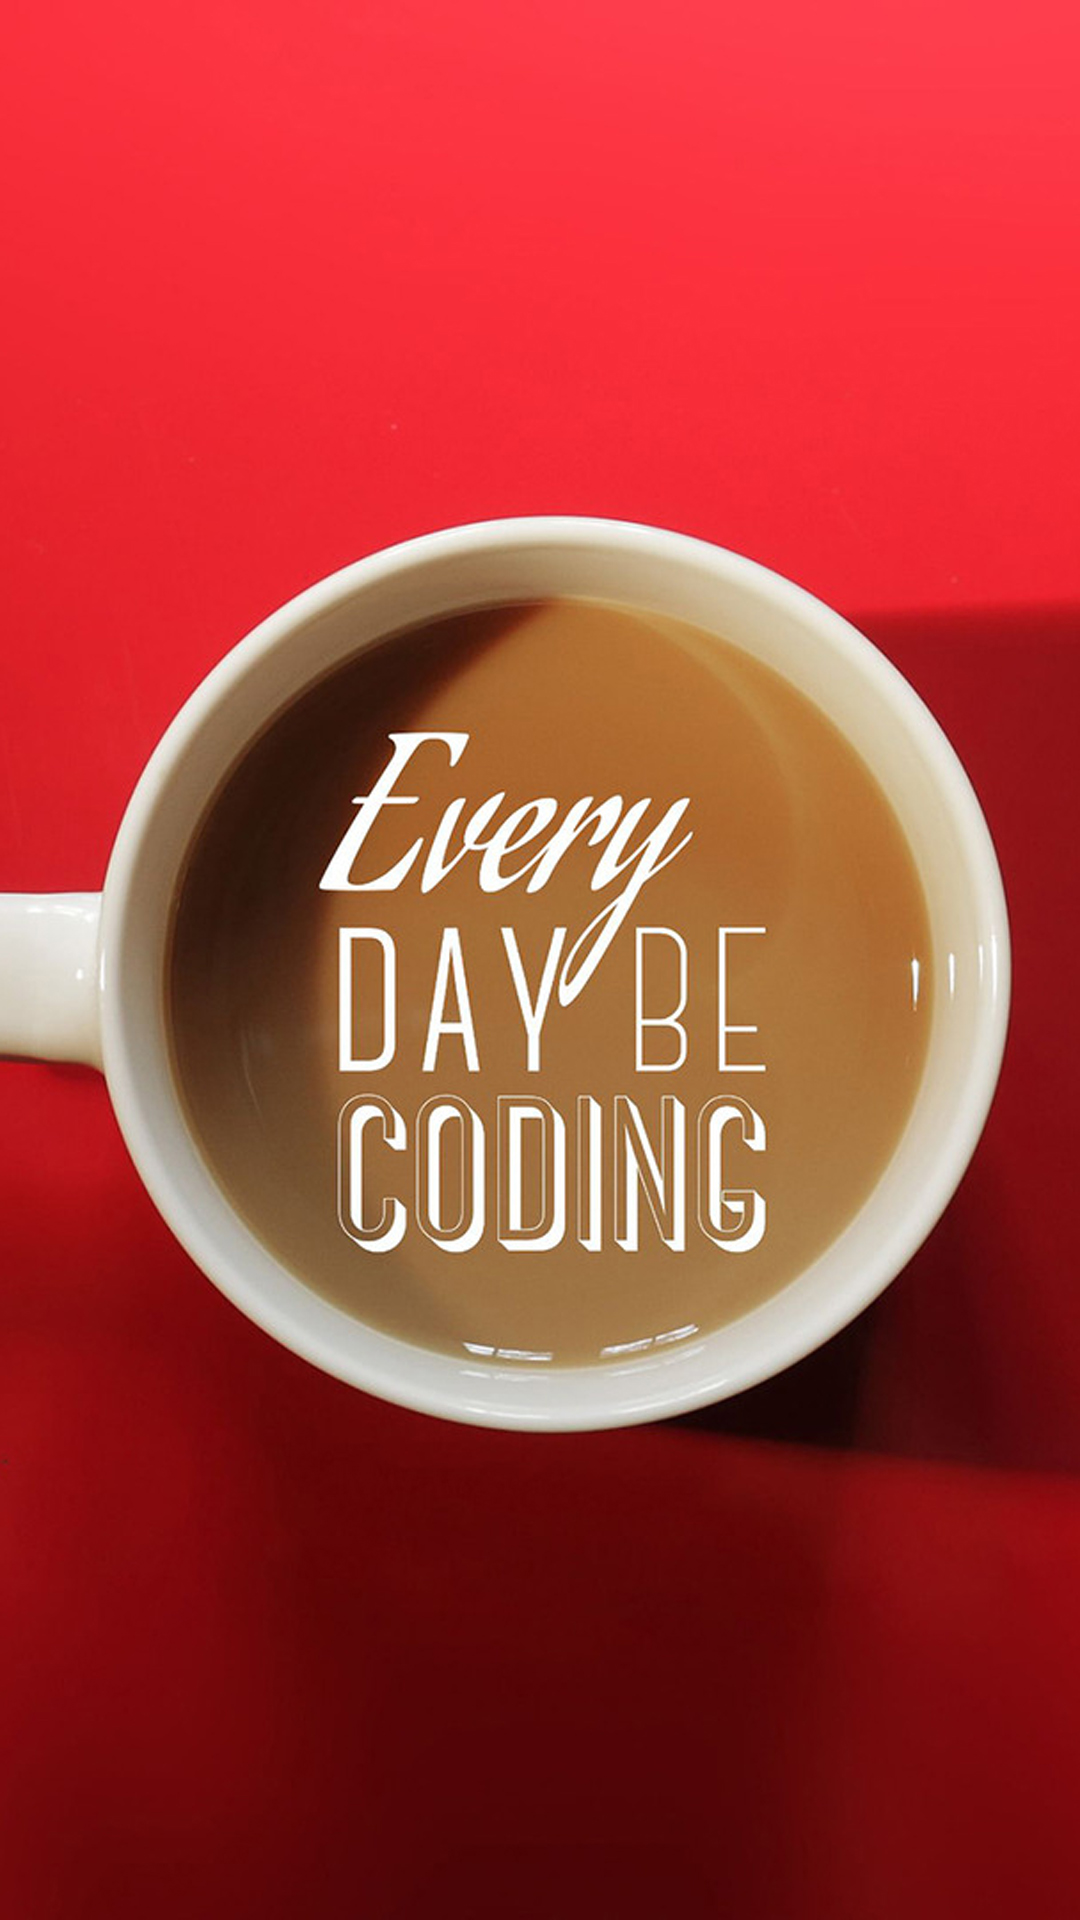 Every Day Be Coding Quote